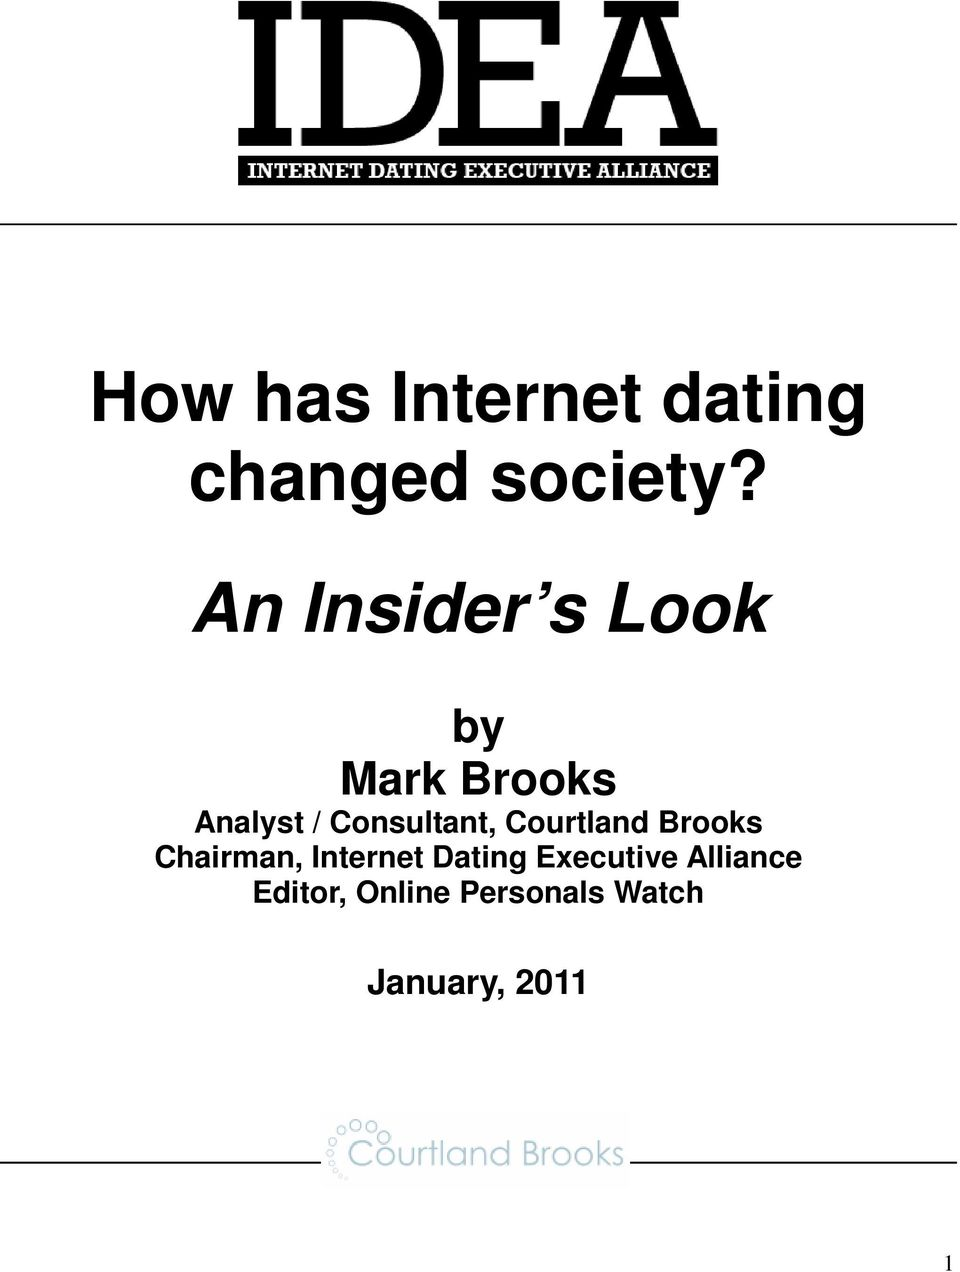 Consultant, Courtland Brooks Chairman, Internet